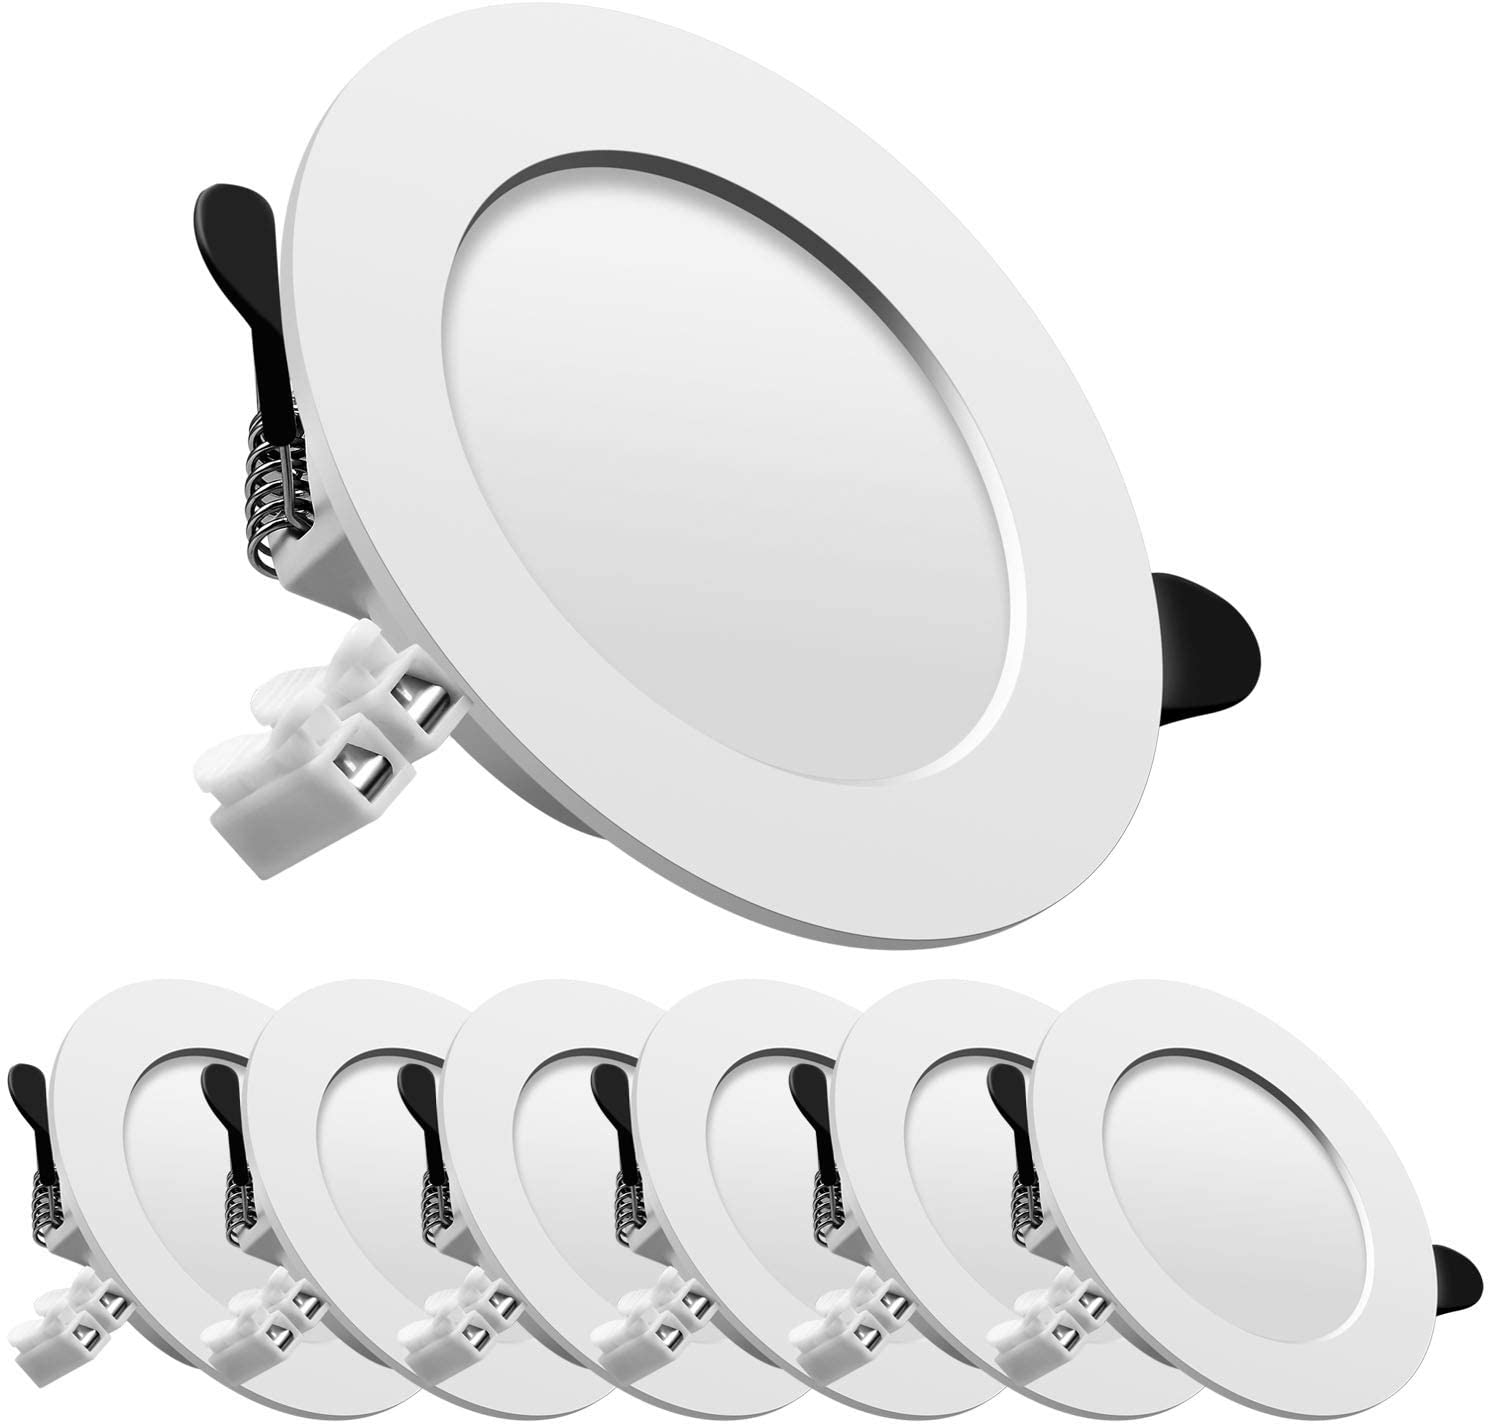 Downlight led empotrable redondo,Iluminacion 7W (700 lm),4500K (Luz Natural), Blanco,foco empotrable LED,Ojos de buey de led 6 pack